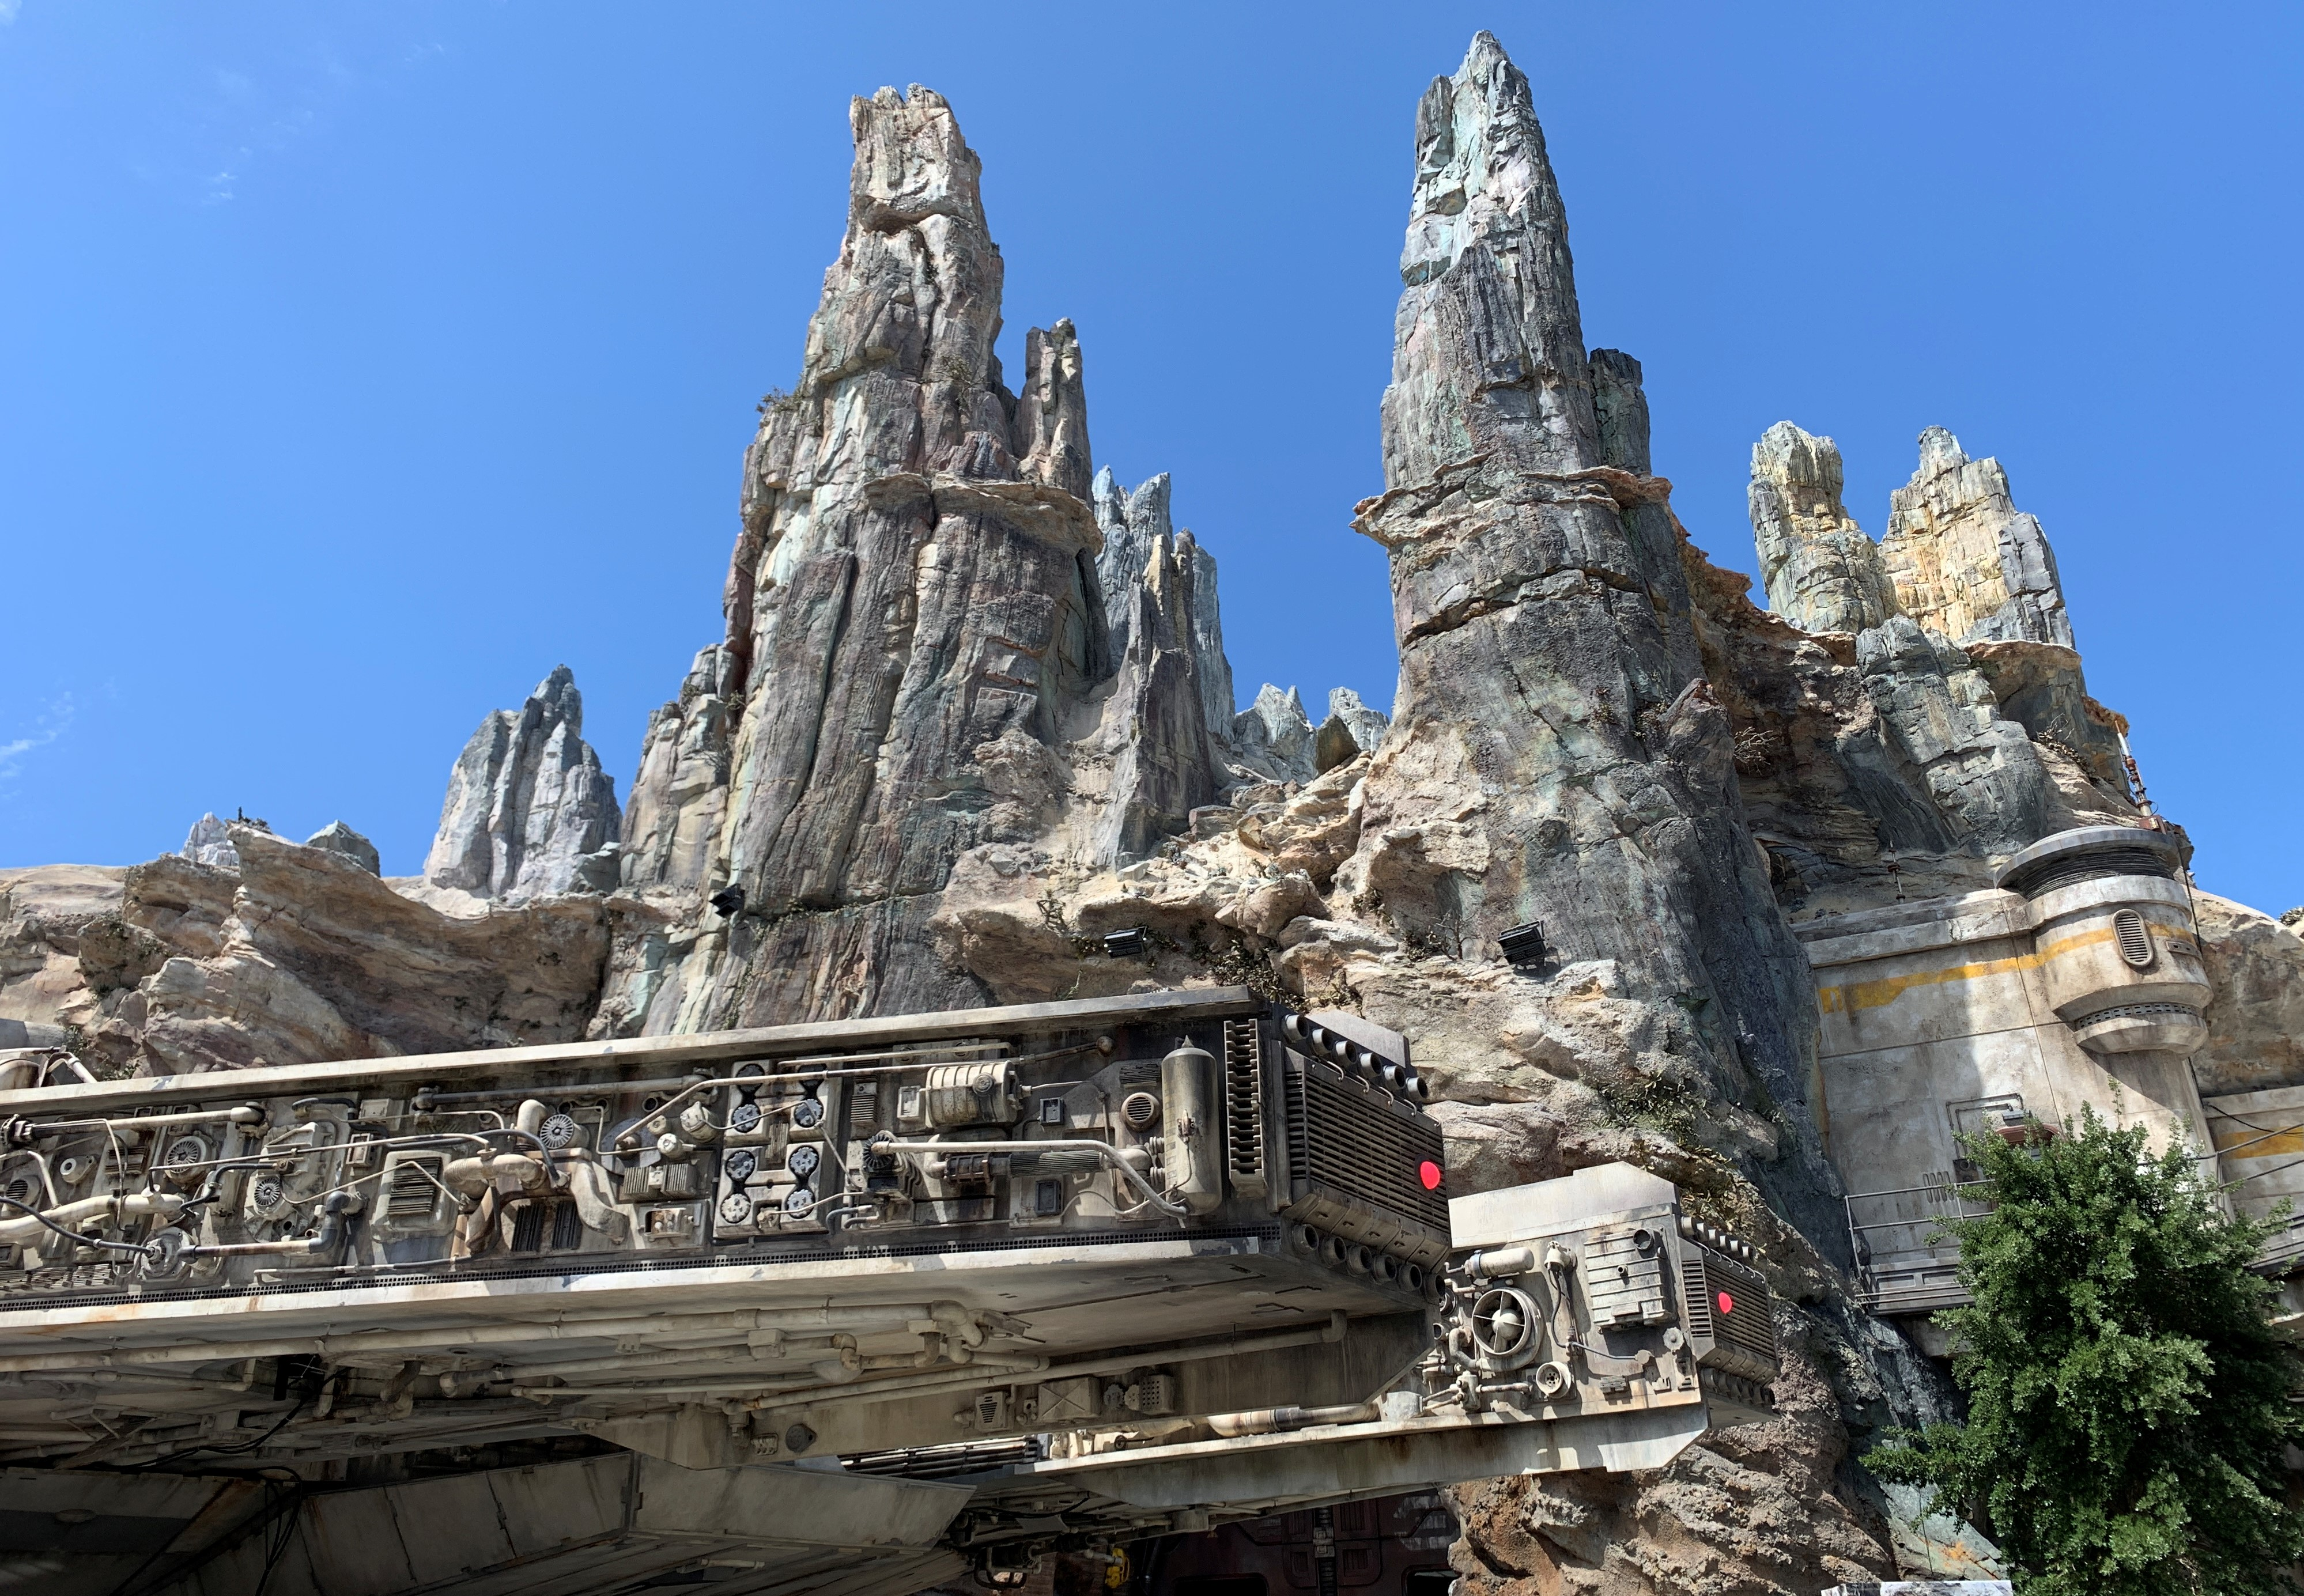 A familiar freighter awaits nestled in the beautiful spires of Batuu!